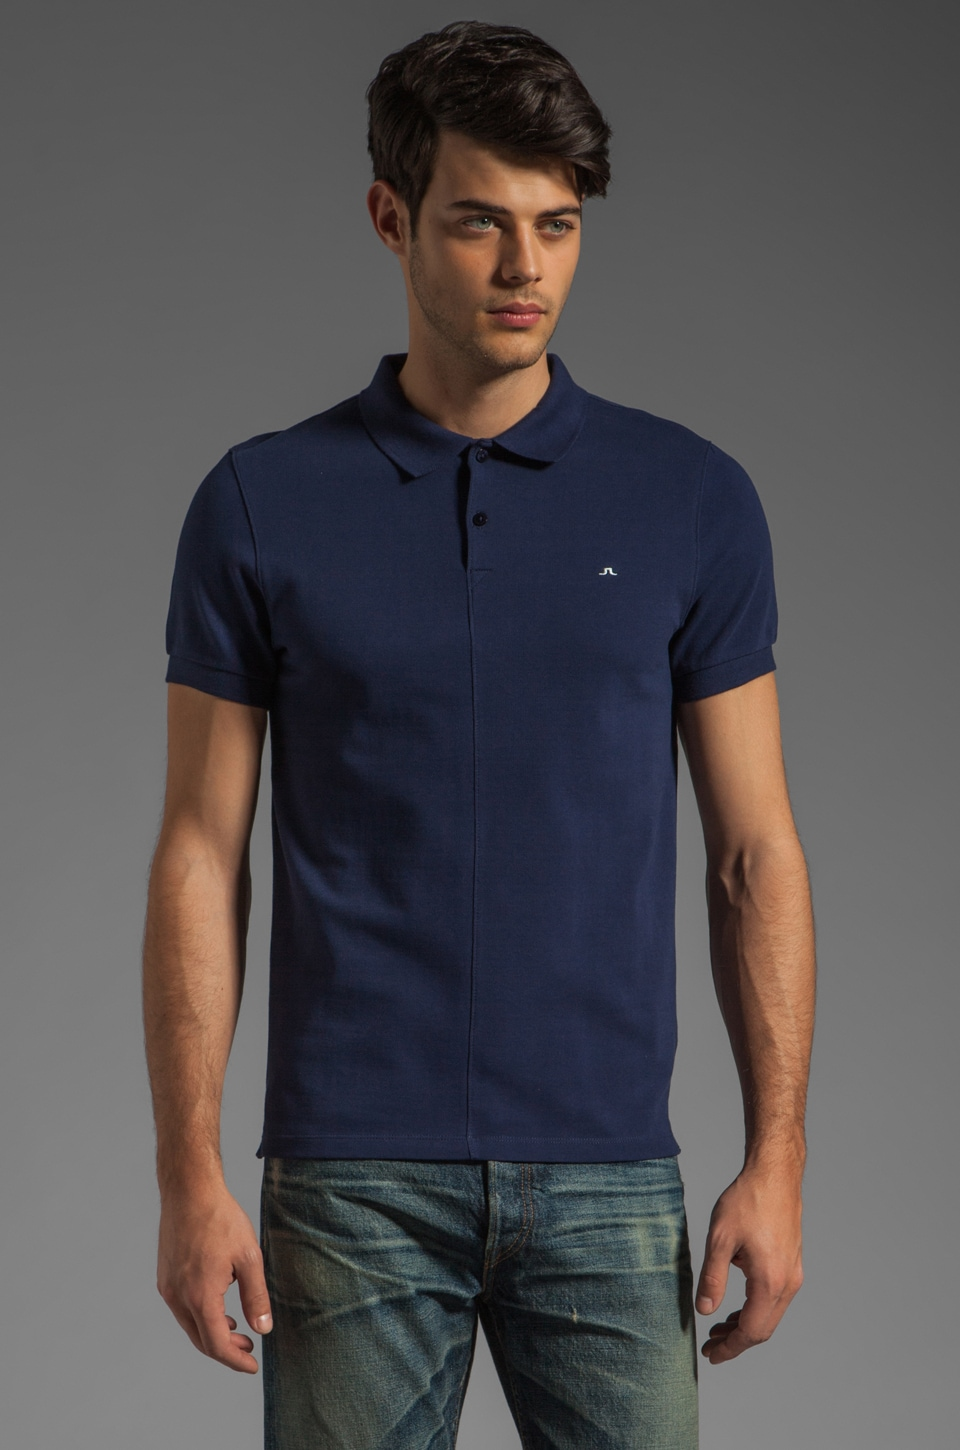 J. Lindeberg Rubi Slim JL Pique Polo en Dark Blue/Purple